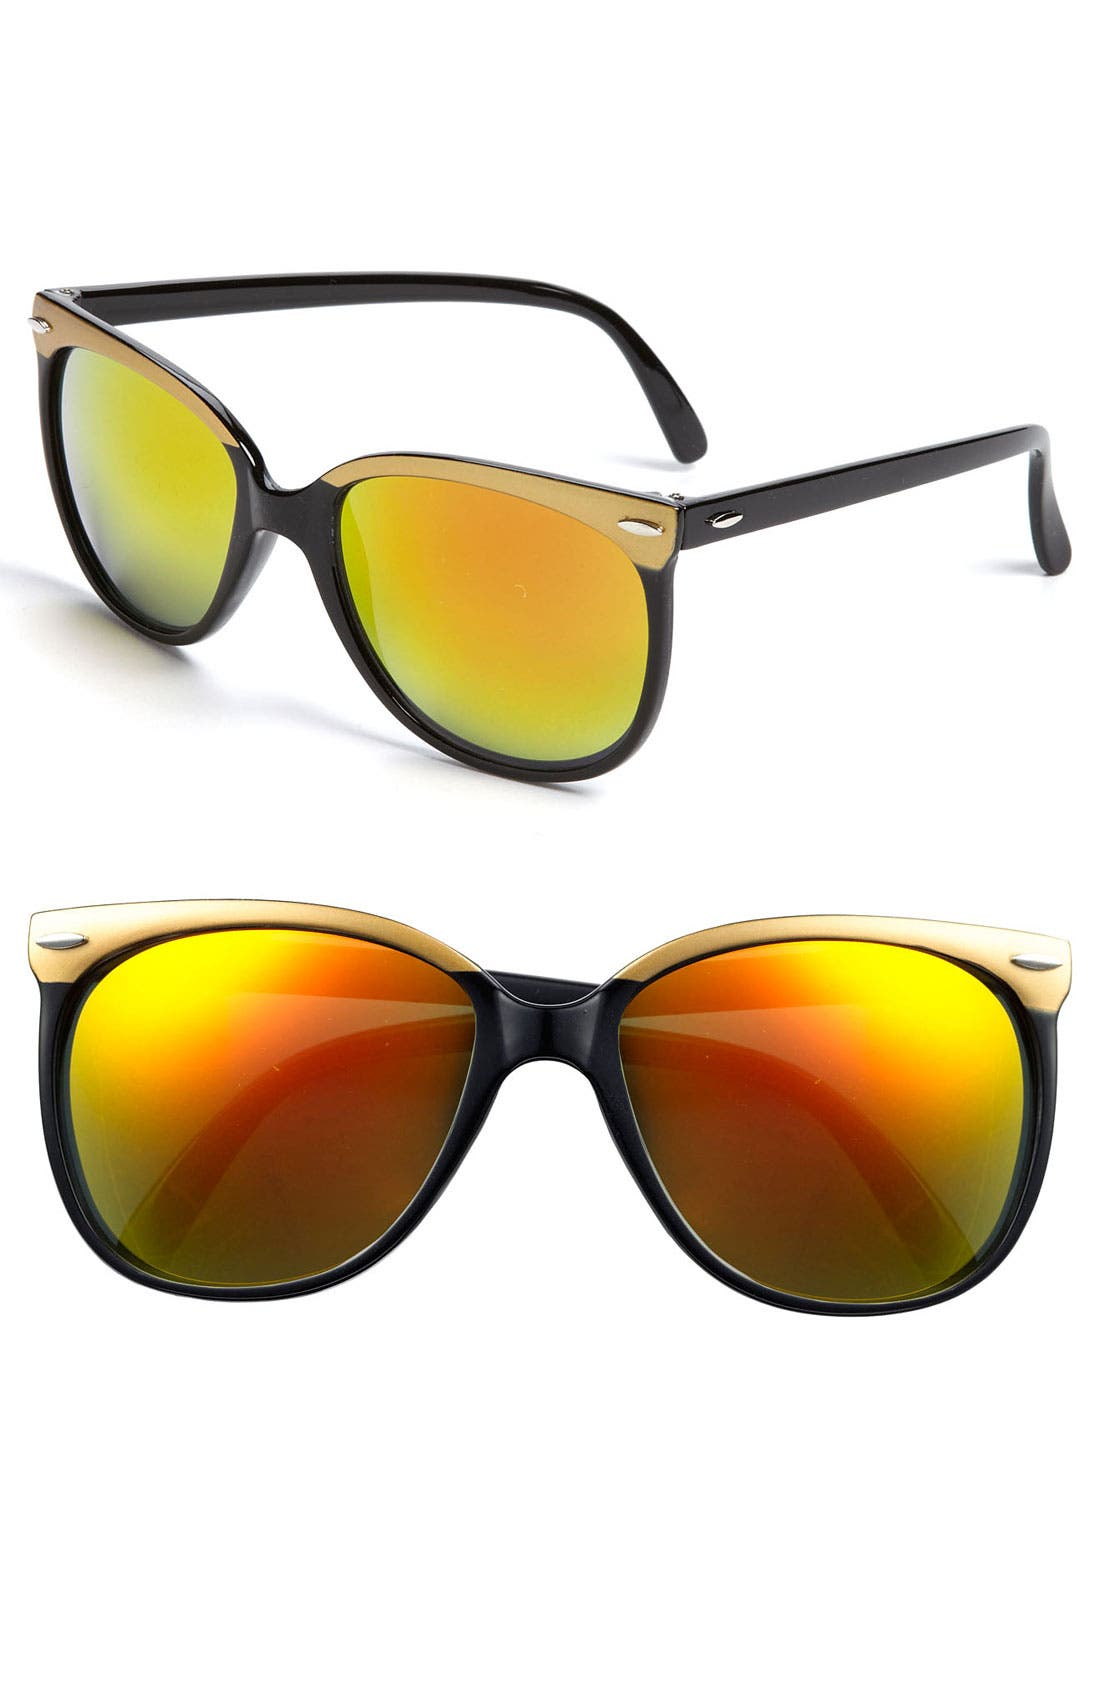 Main Image - BP. Mirrored Retro Sunglasses